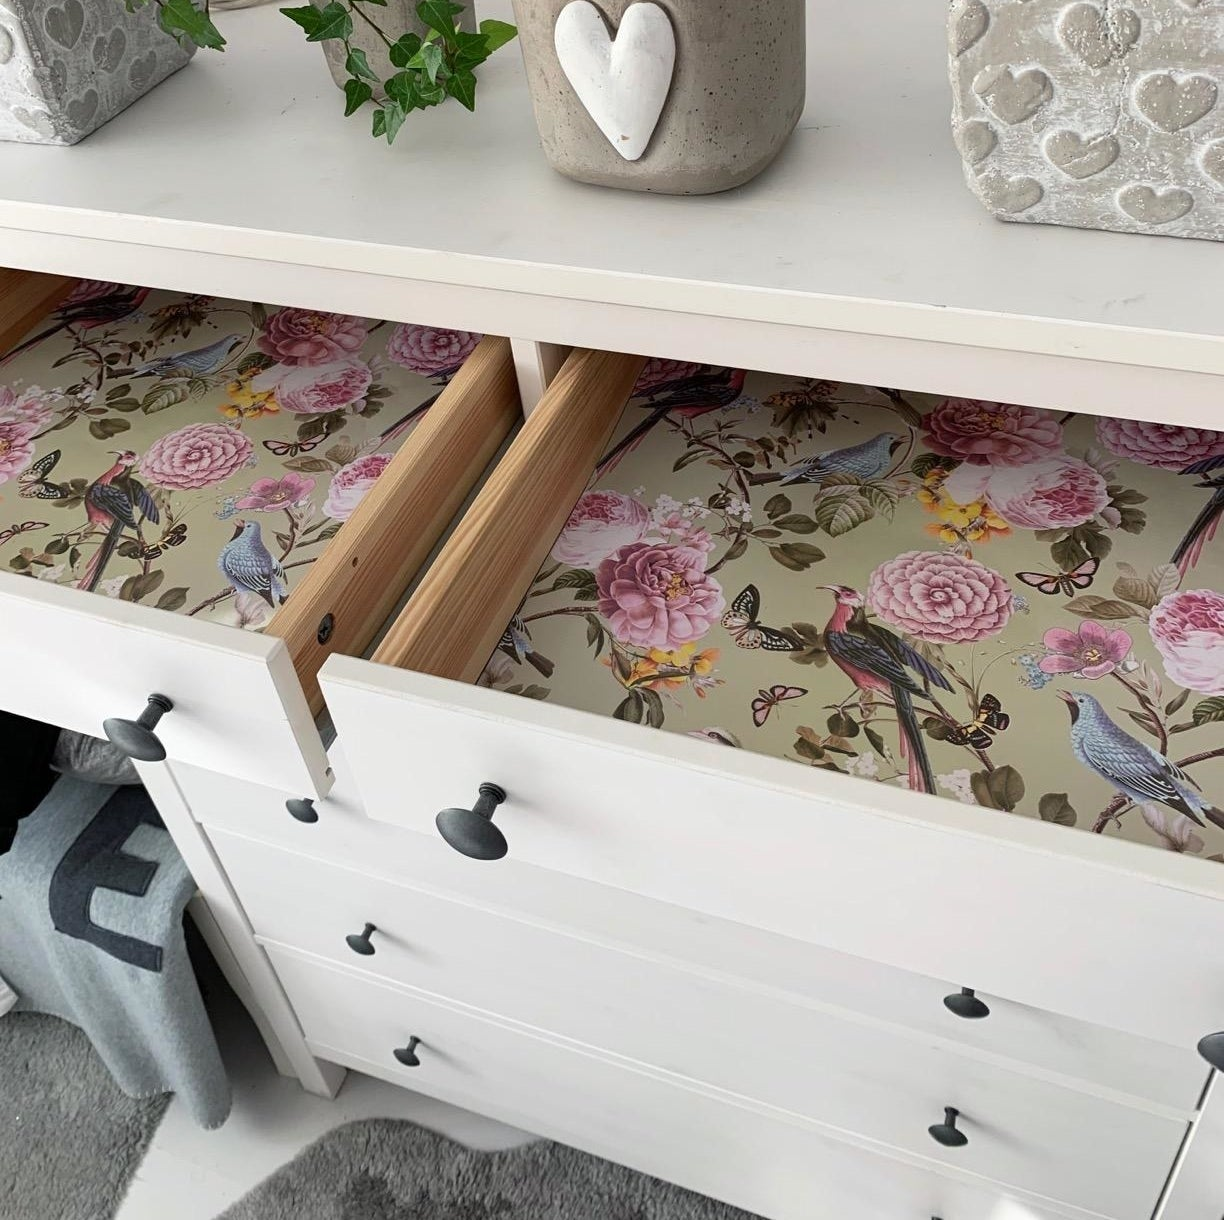 a reviewer photo of their dresser with the drawer open to show the scented drawer liner inside